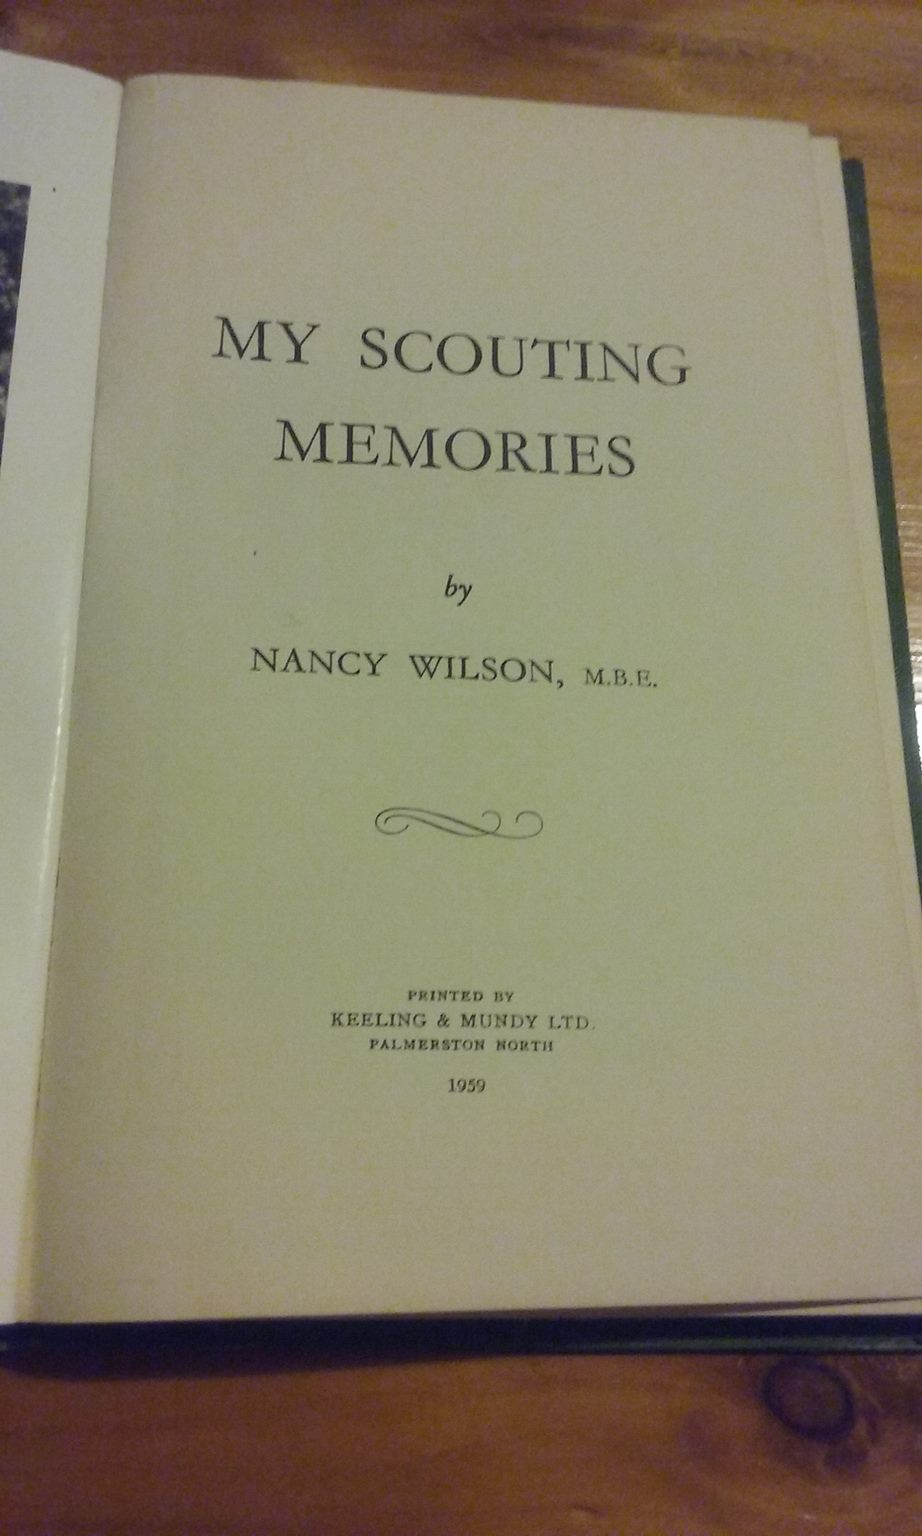 My Scouting Memories - NZ - Nancy Wilson MBE - 1959